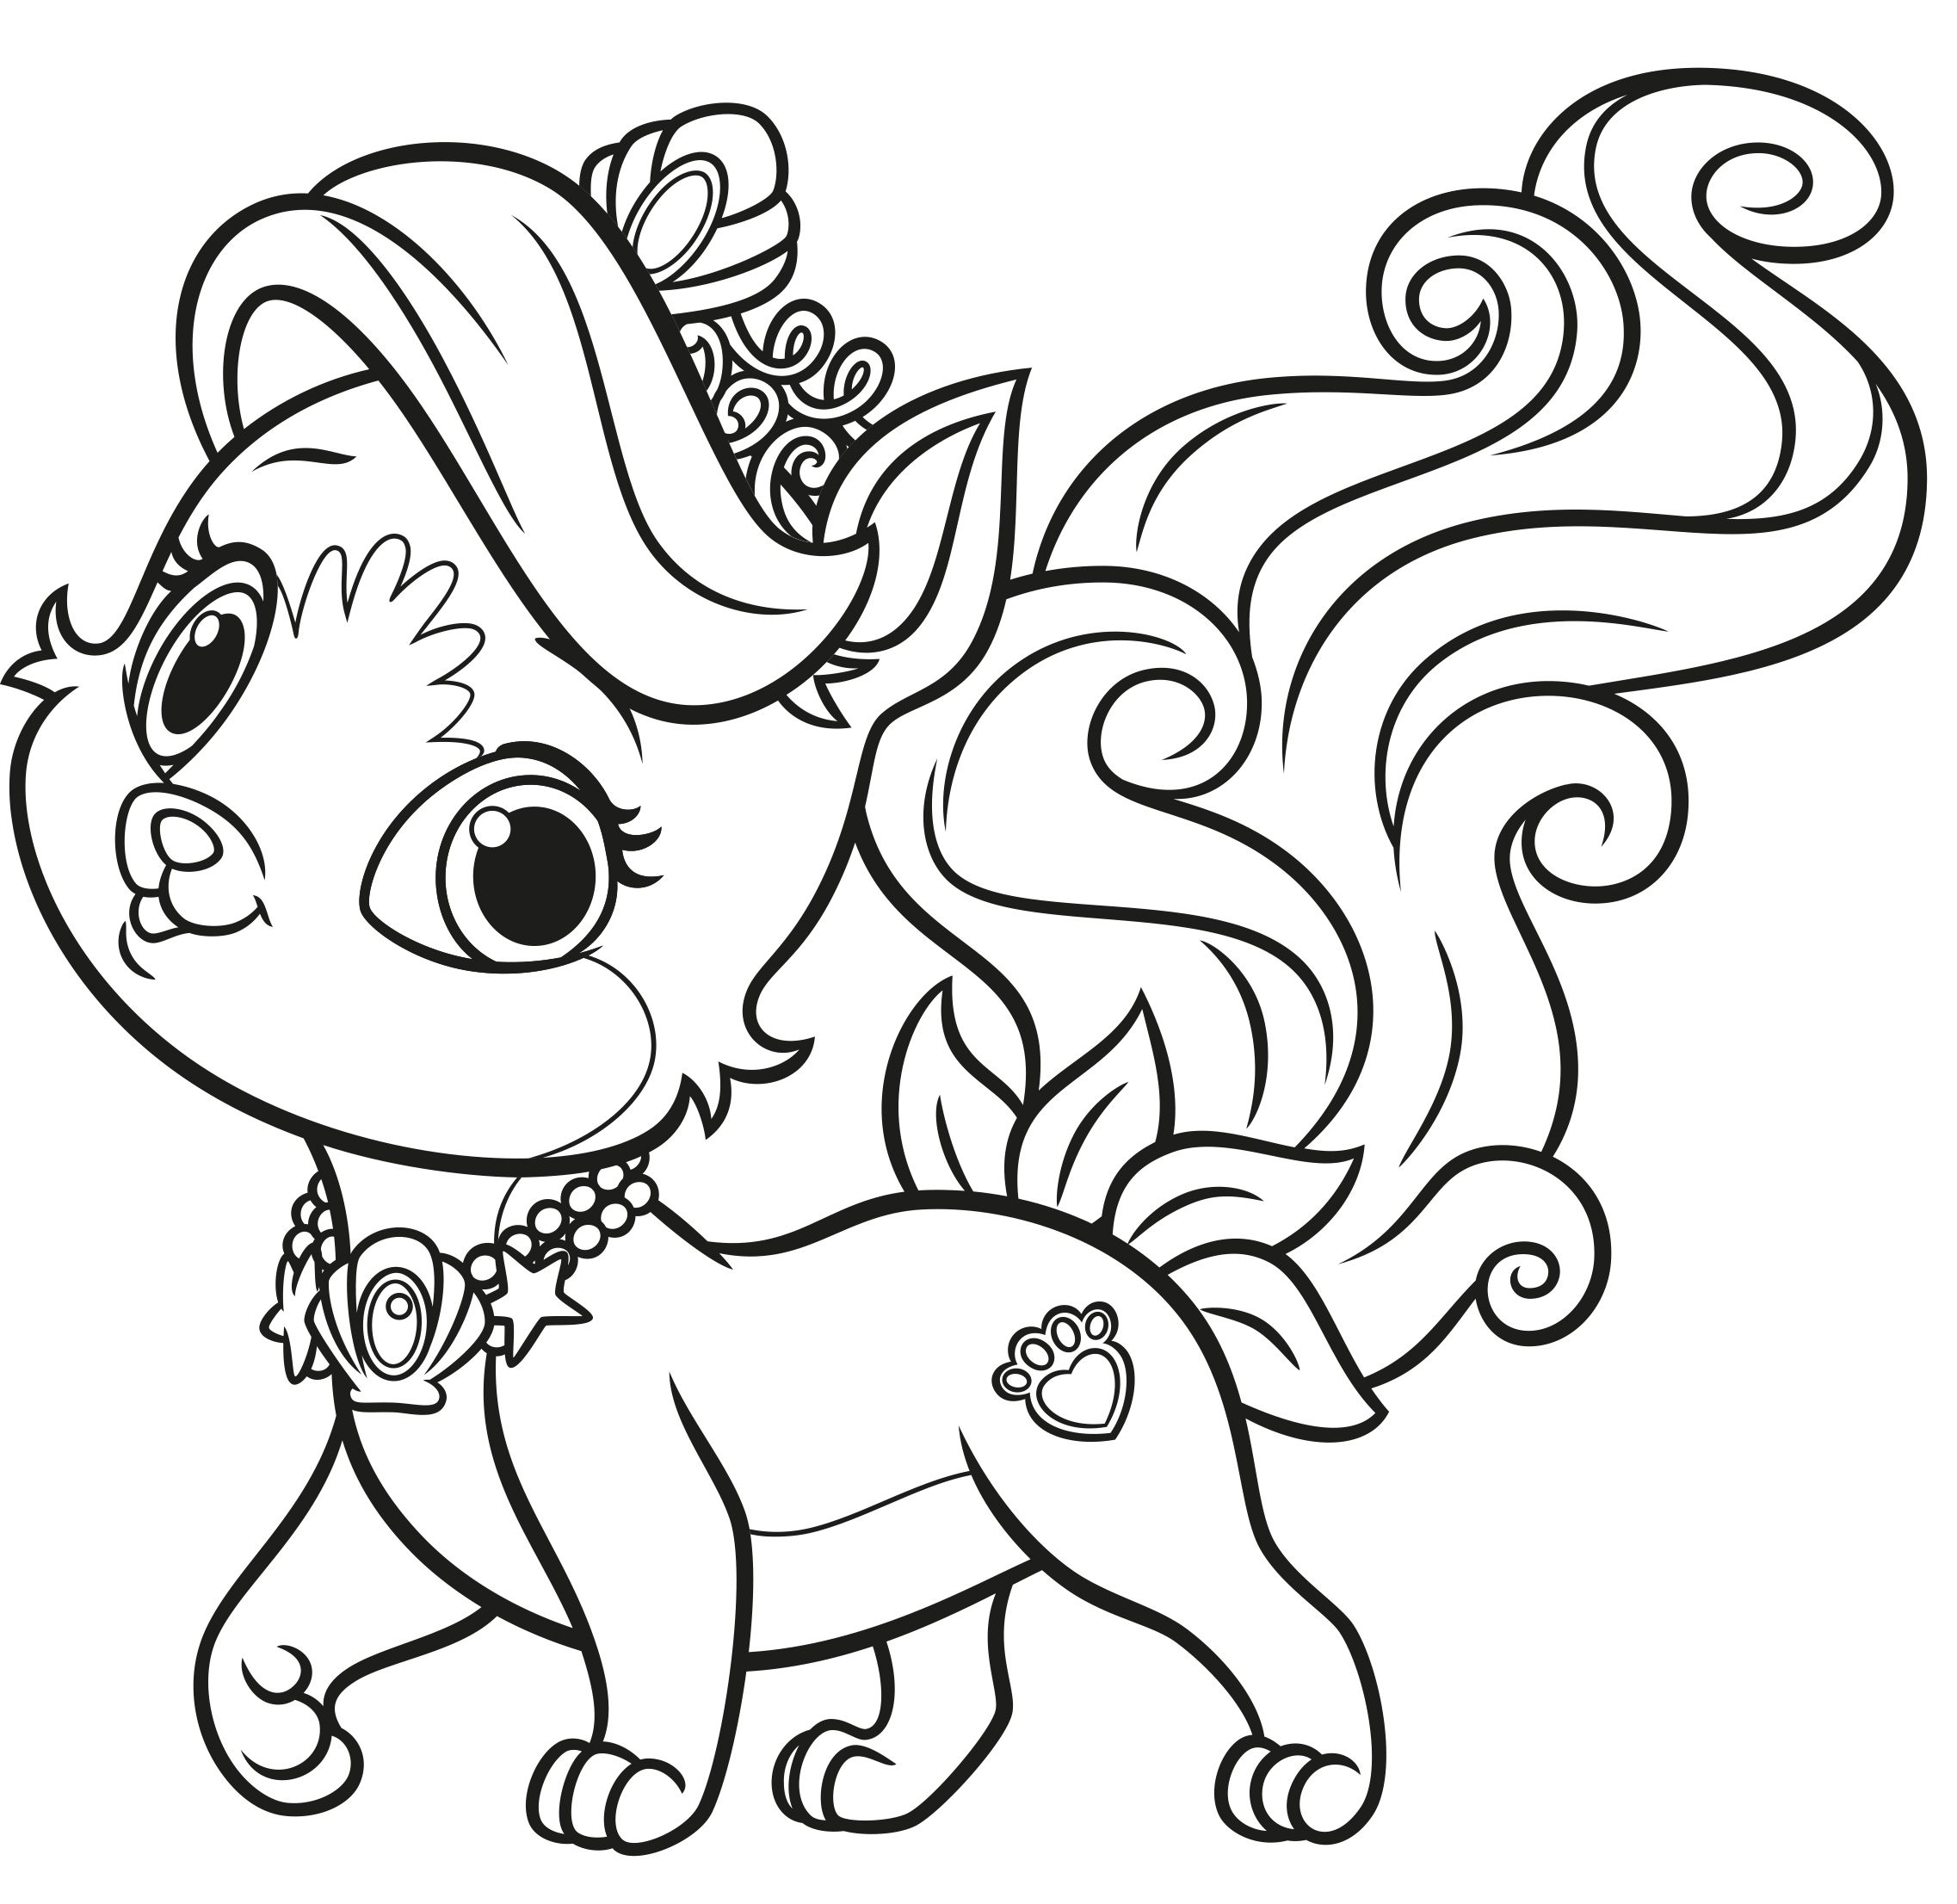 Palace Pets Malvorlage | Coloring | Pinterest | Palace pets and ...